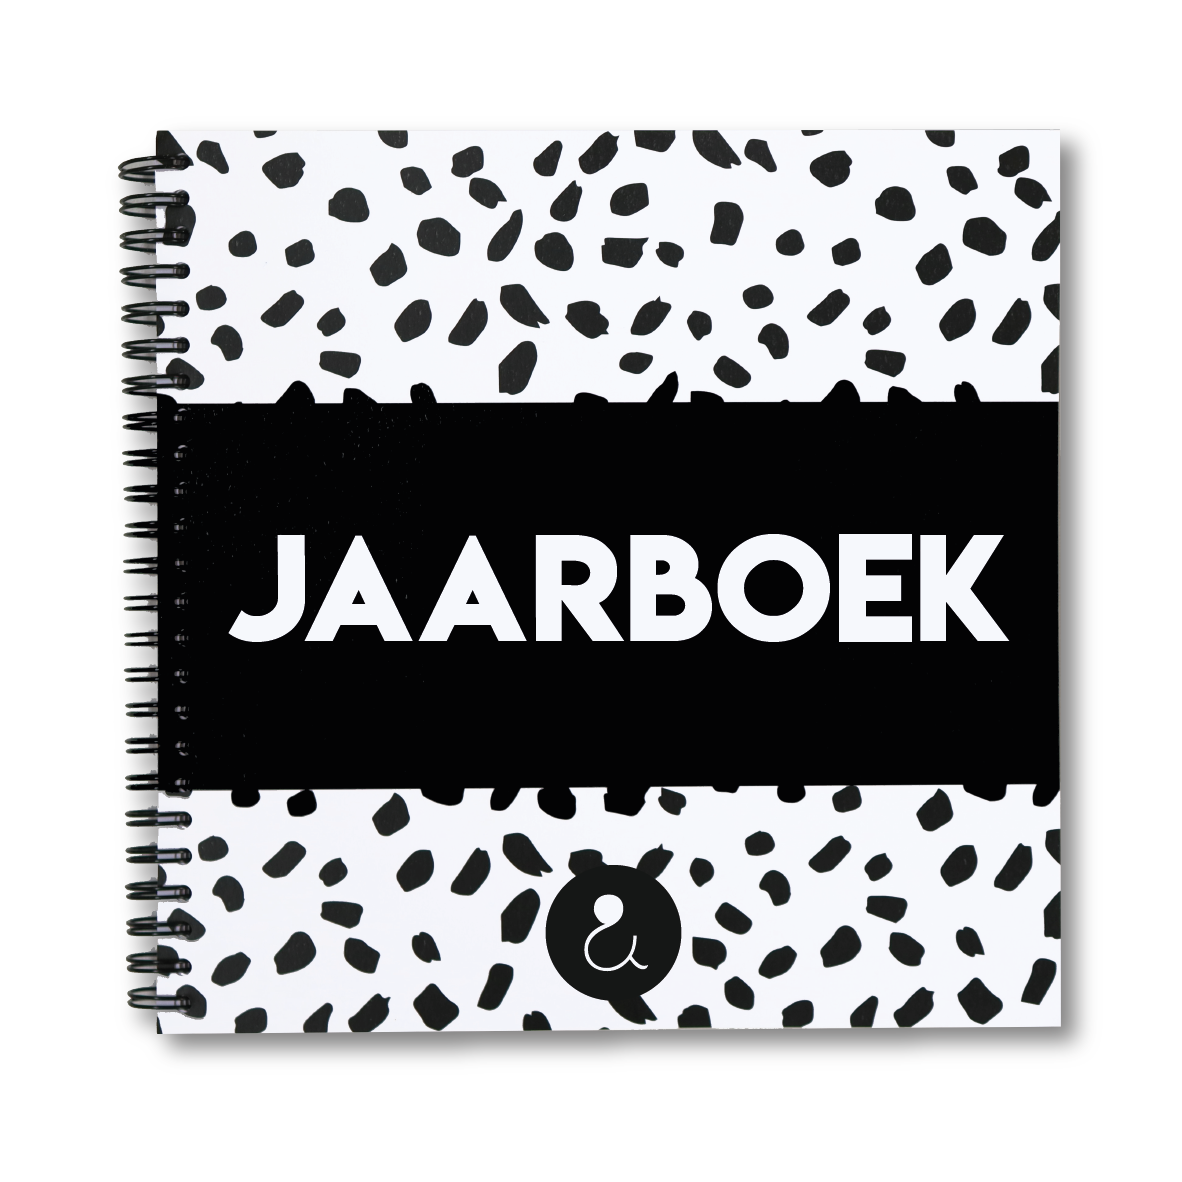 Jaarboek | monochrome